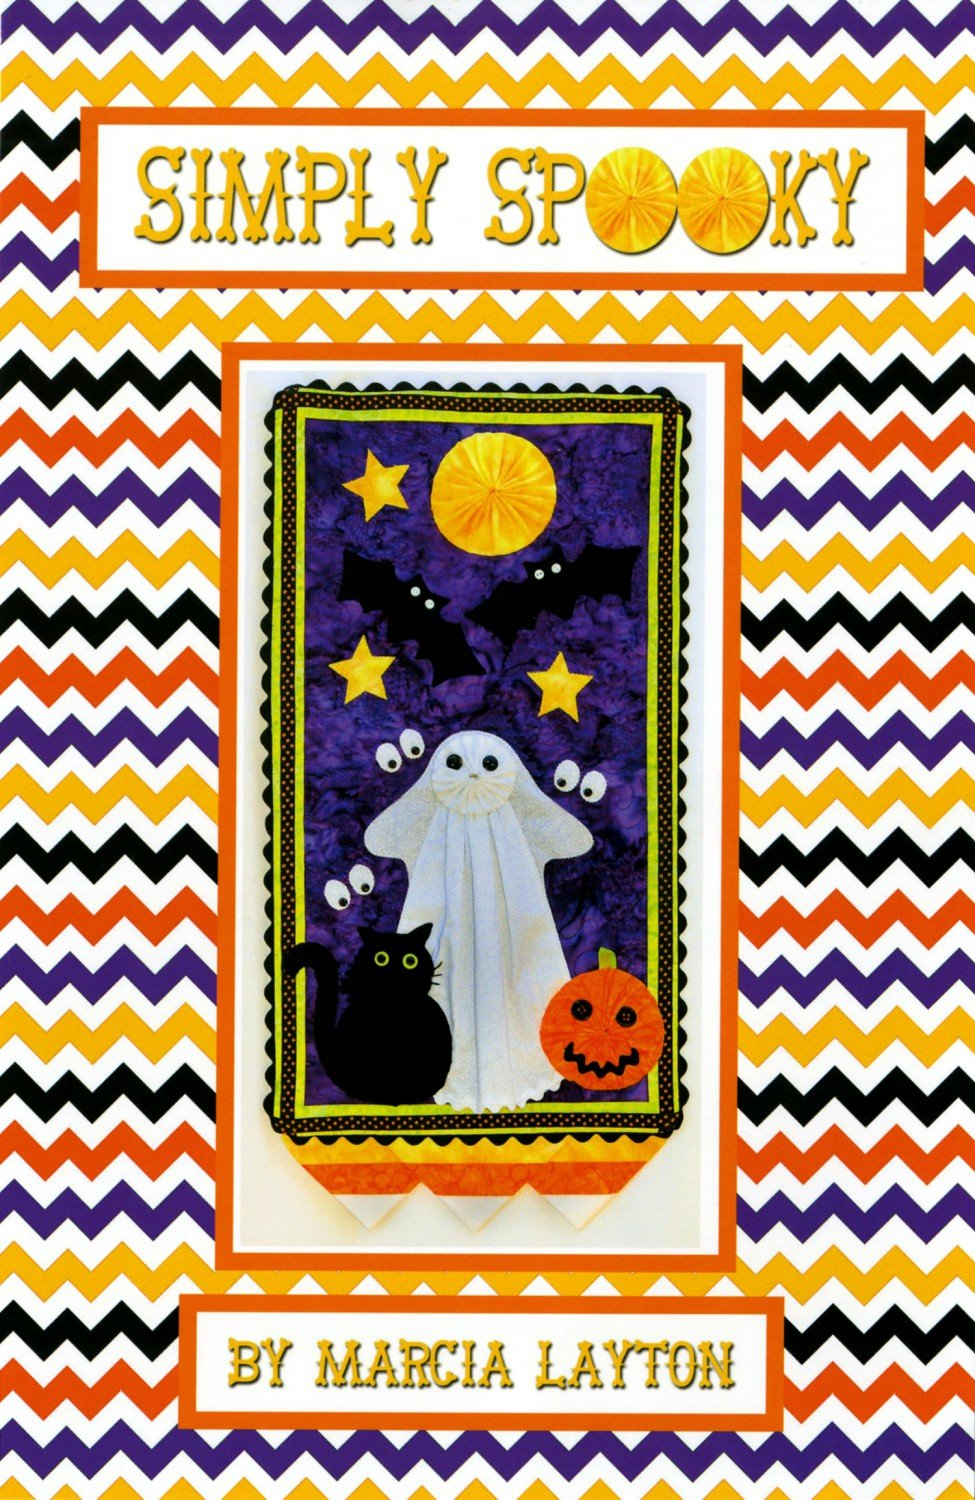 Simply Spooky by Marcia Layton